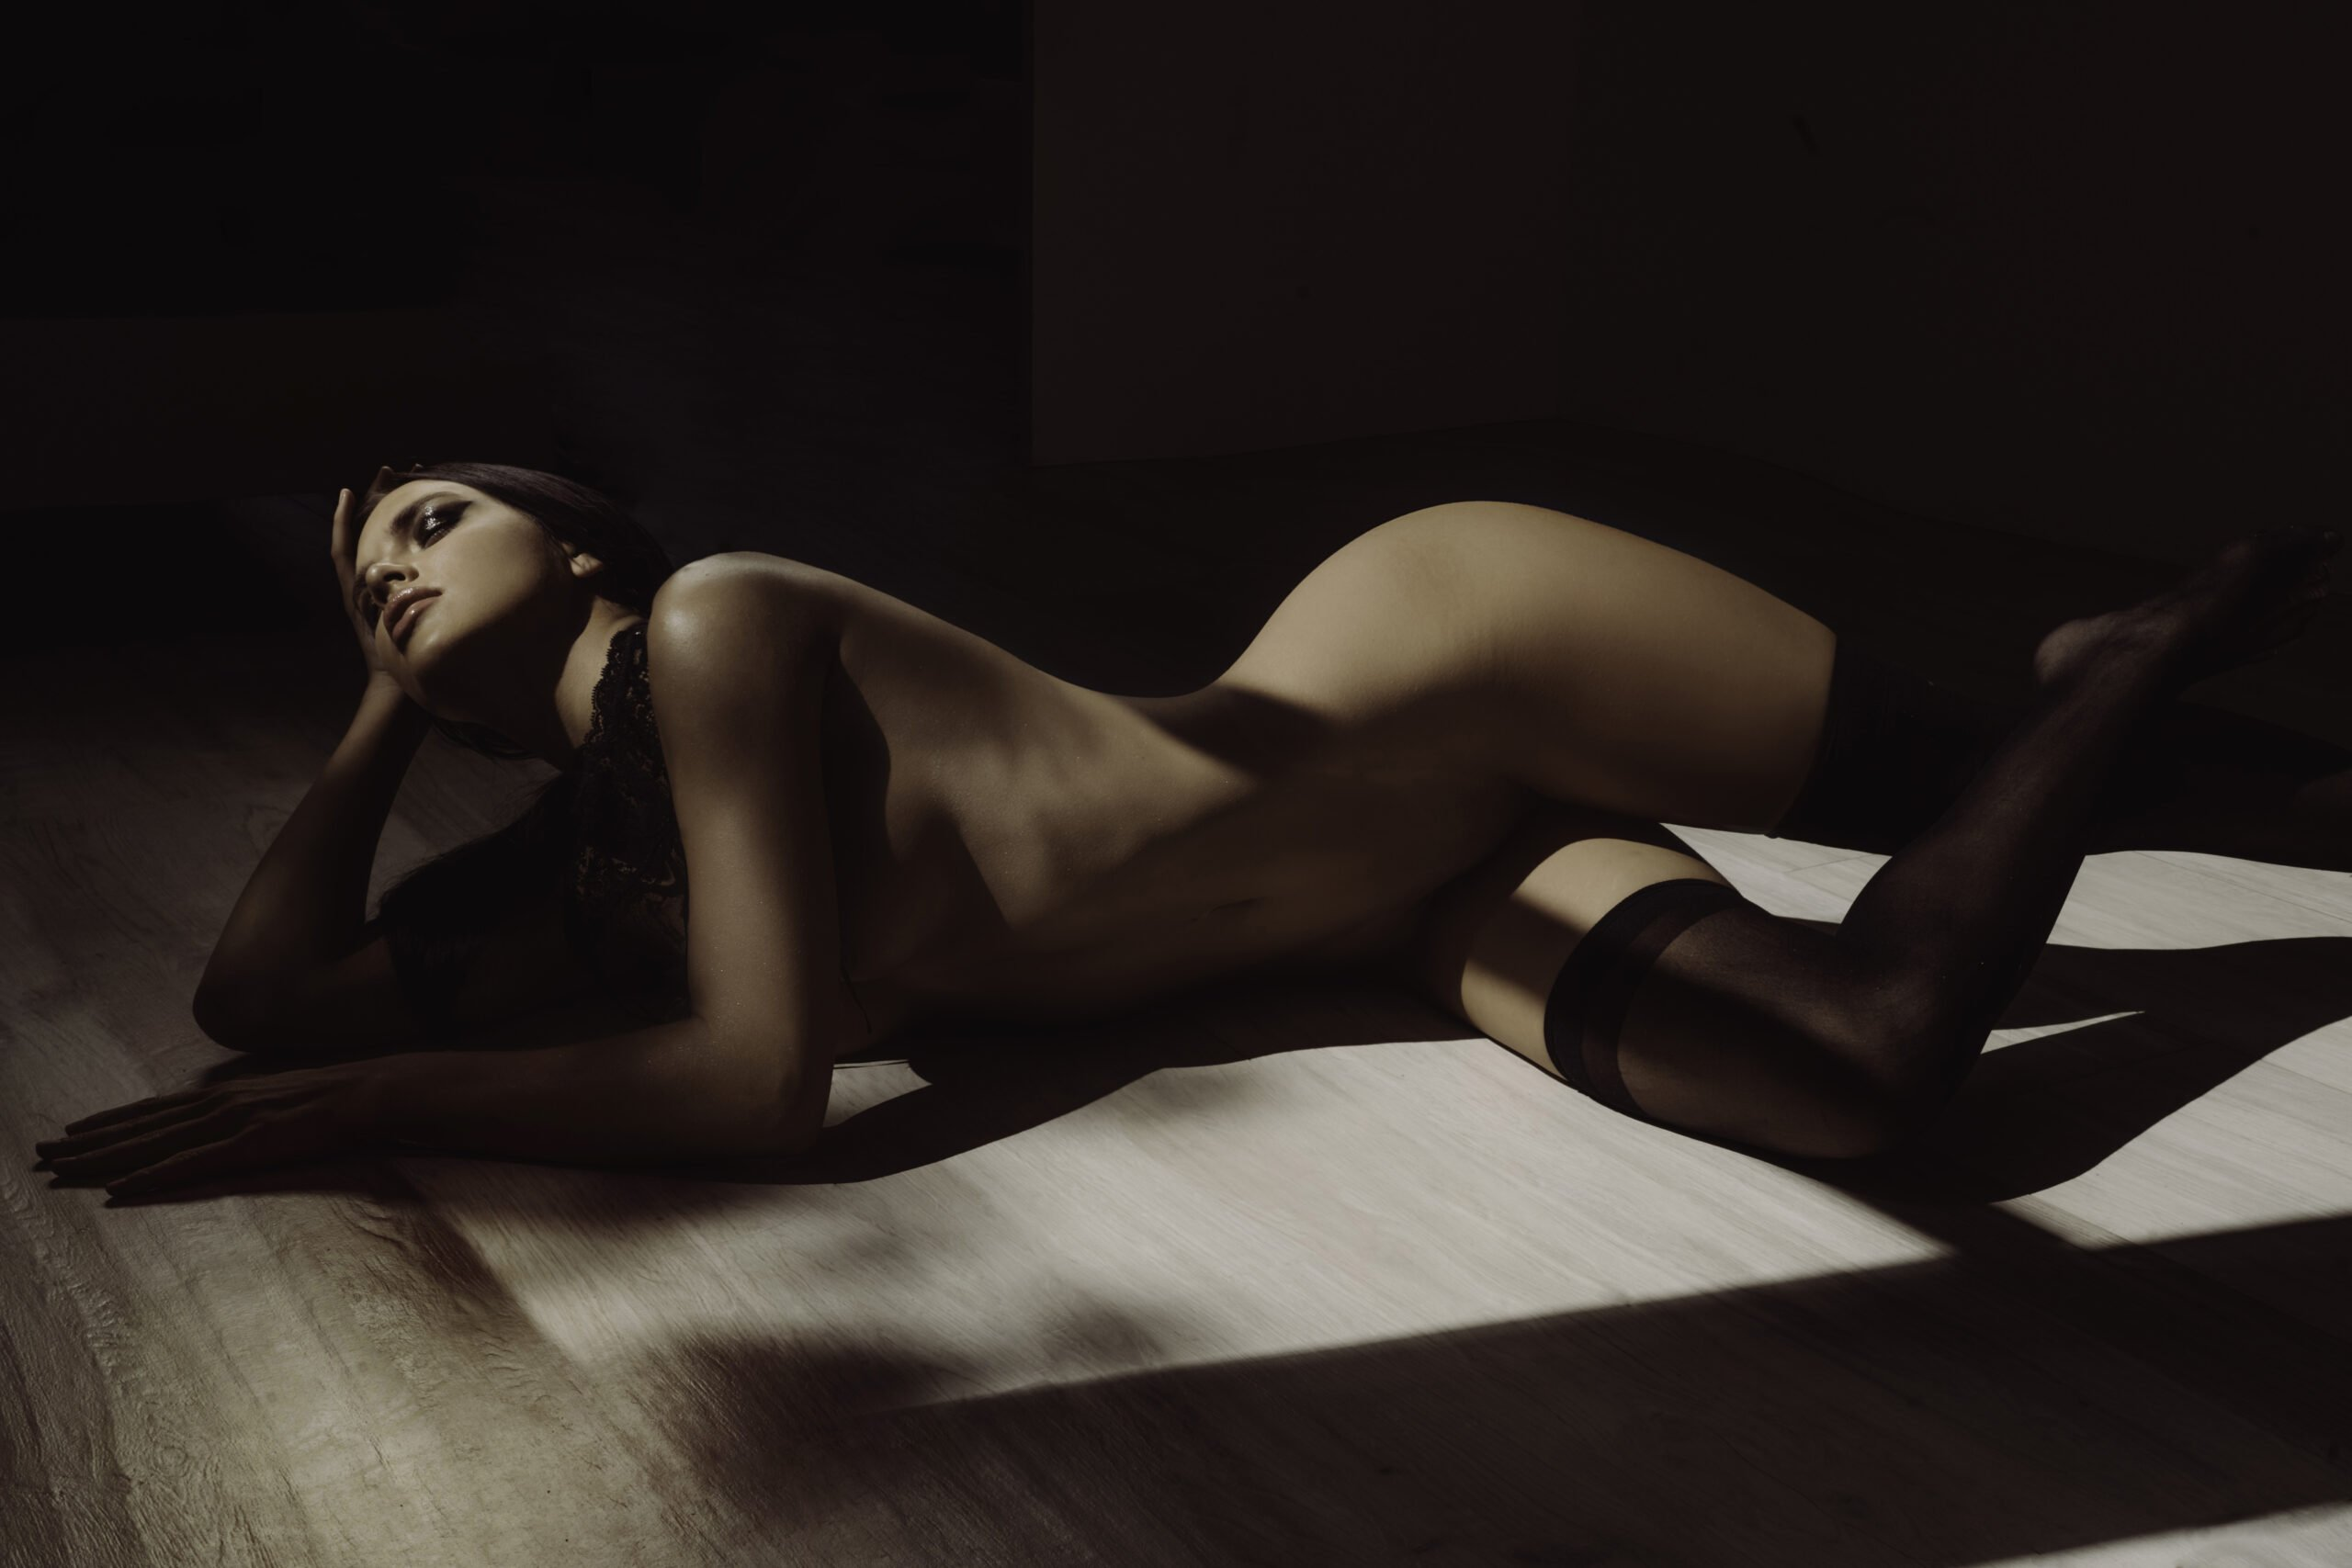 implied nude of a dark haired model in Orange County CA